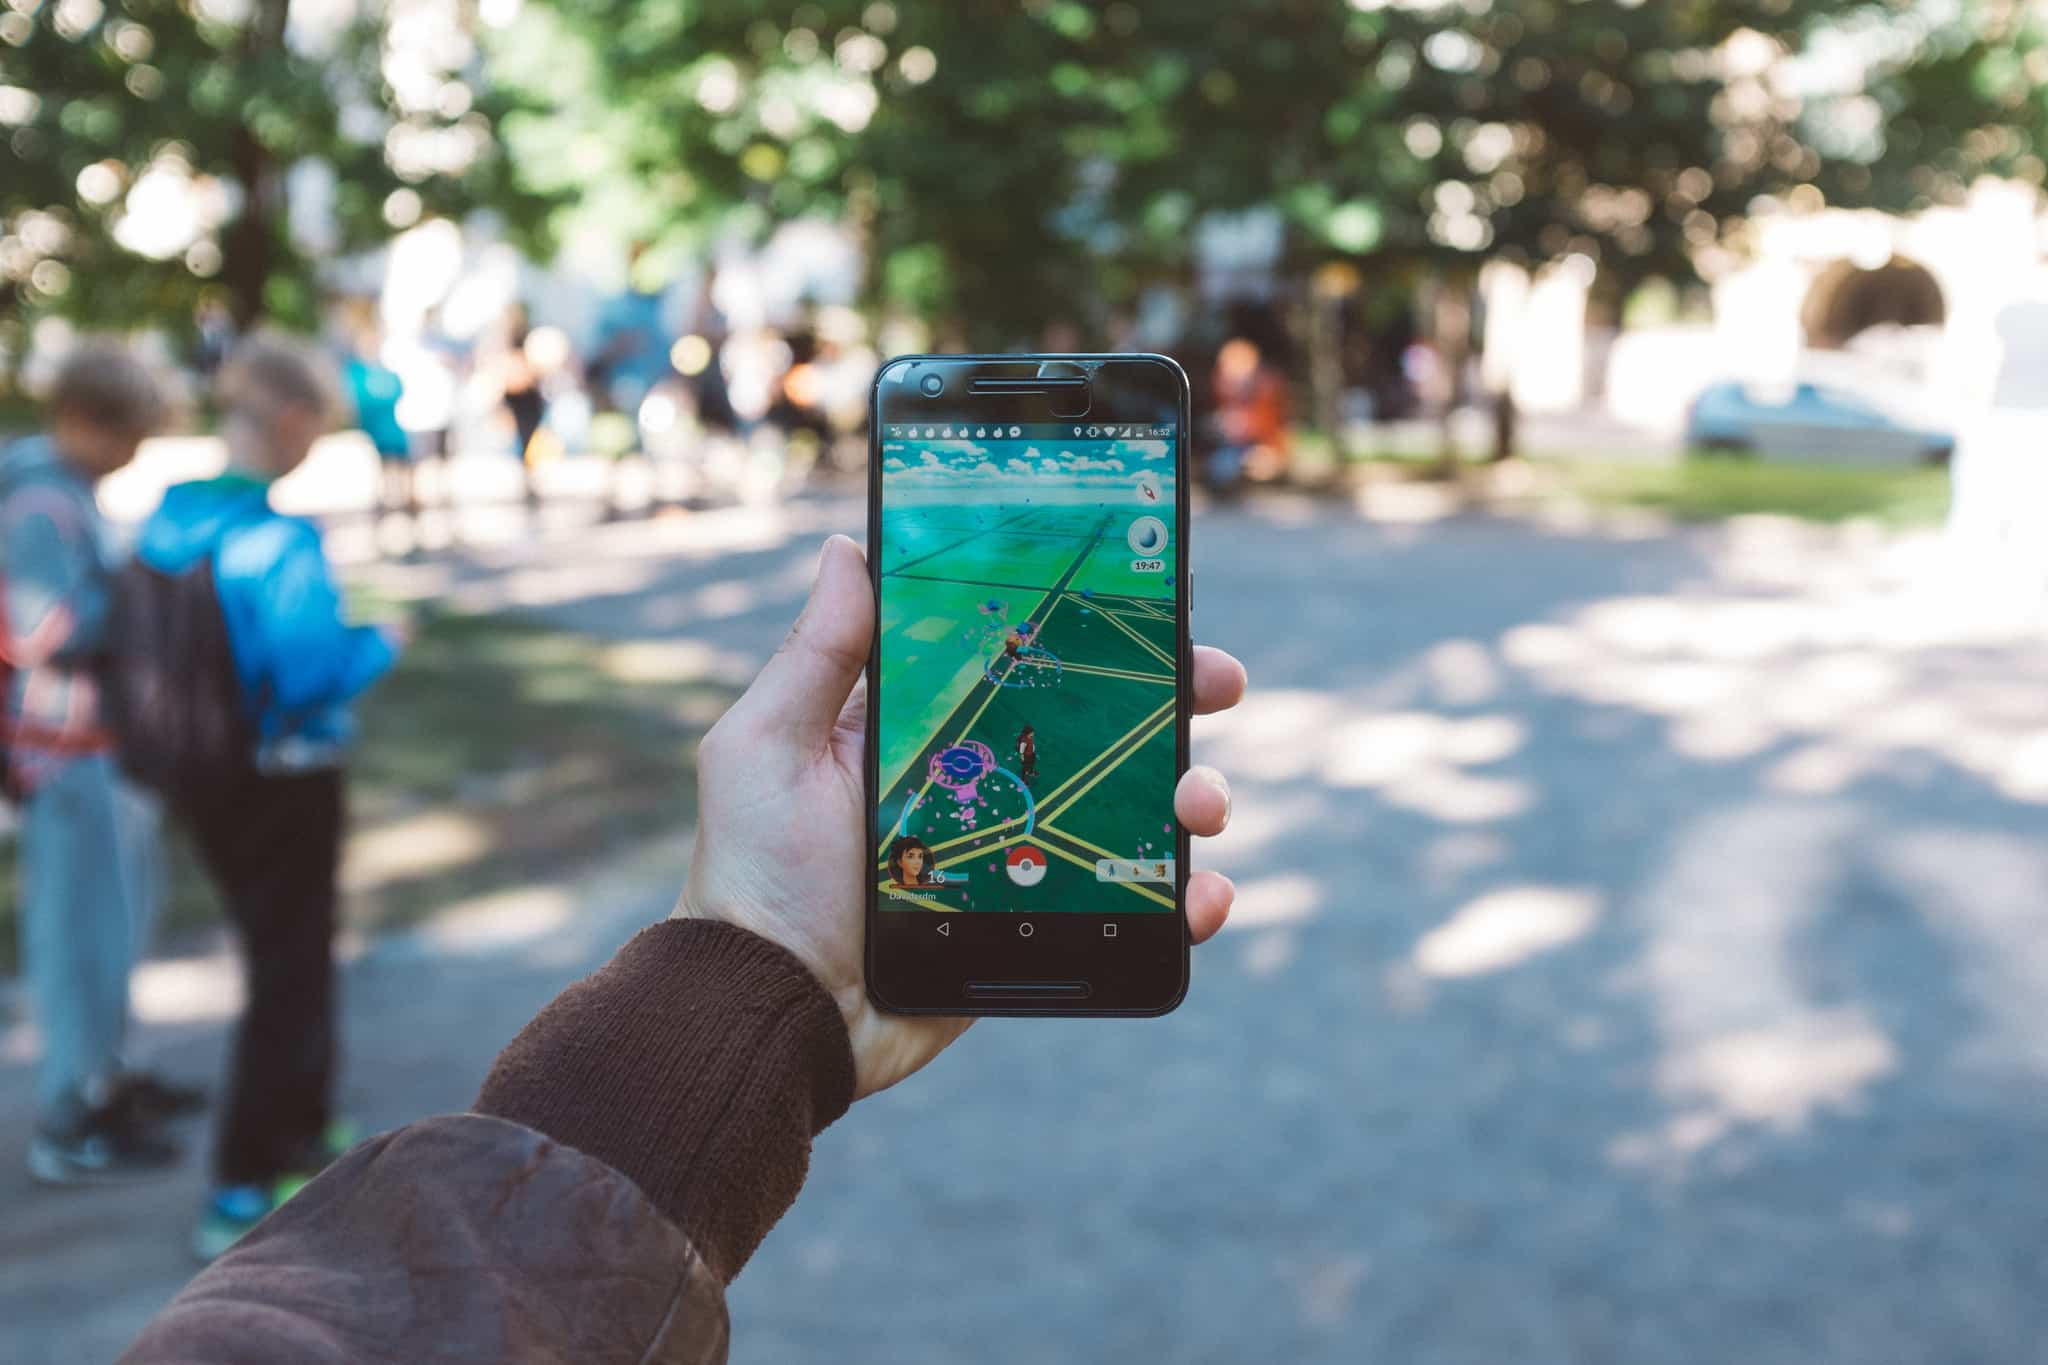 App inspired by Pokémon GO aims to reconnect people with British wildlife